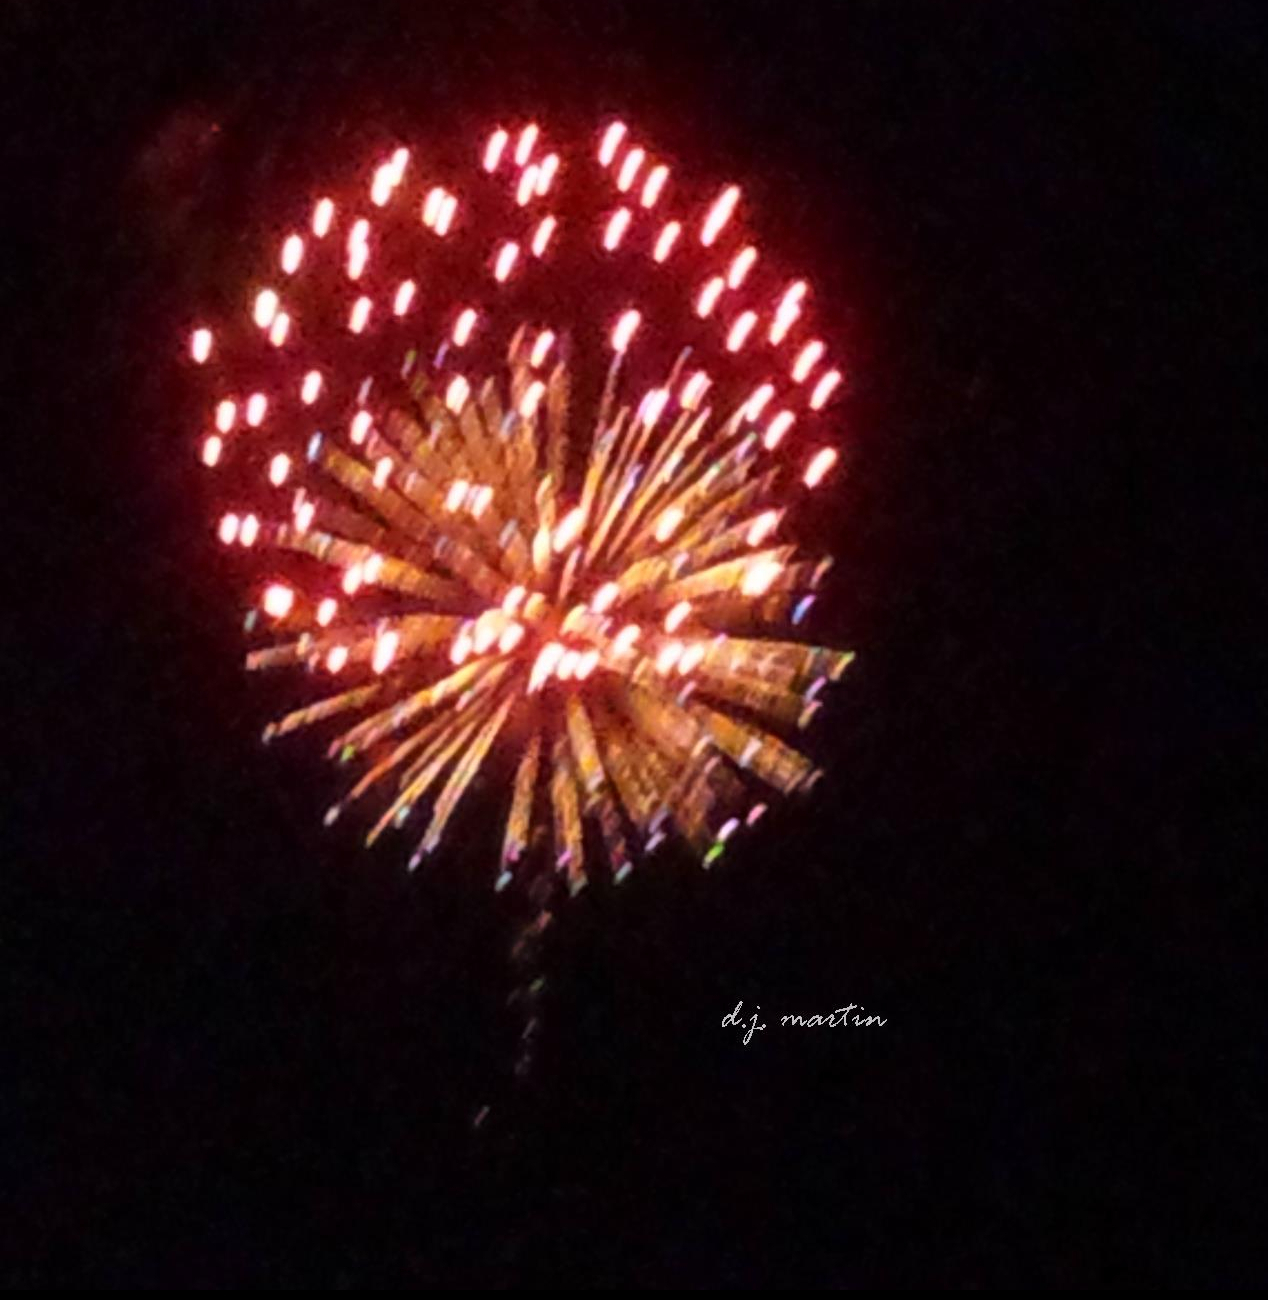 Fireworks by D.J. Martin